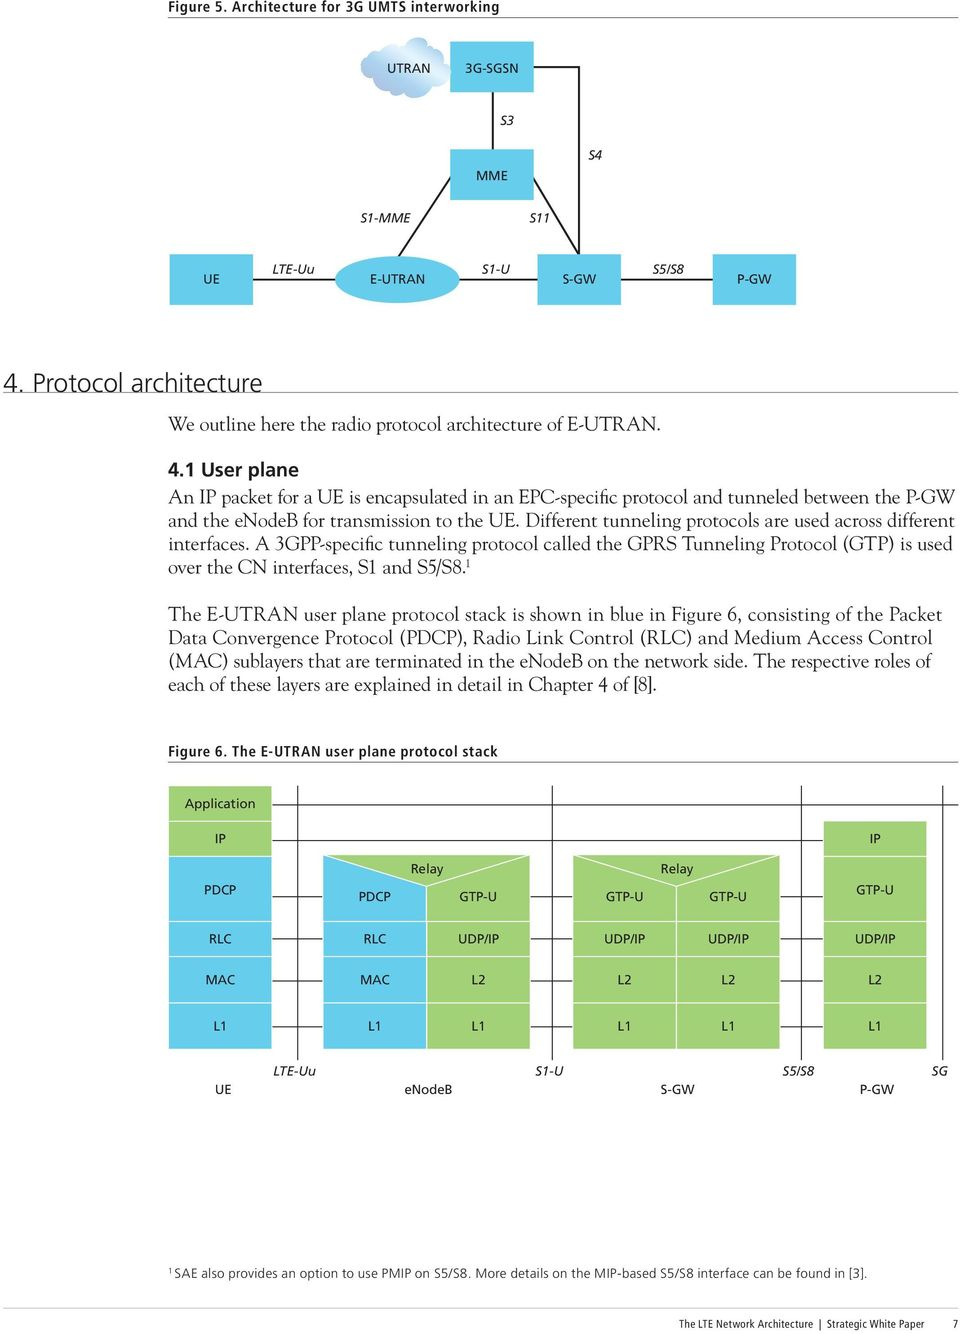 1 User plane An IP packet for a UE is encapsulated in an EPC-specific protocol and tunneled between the P-GW and the enodeb for transmission to the UE.